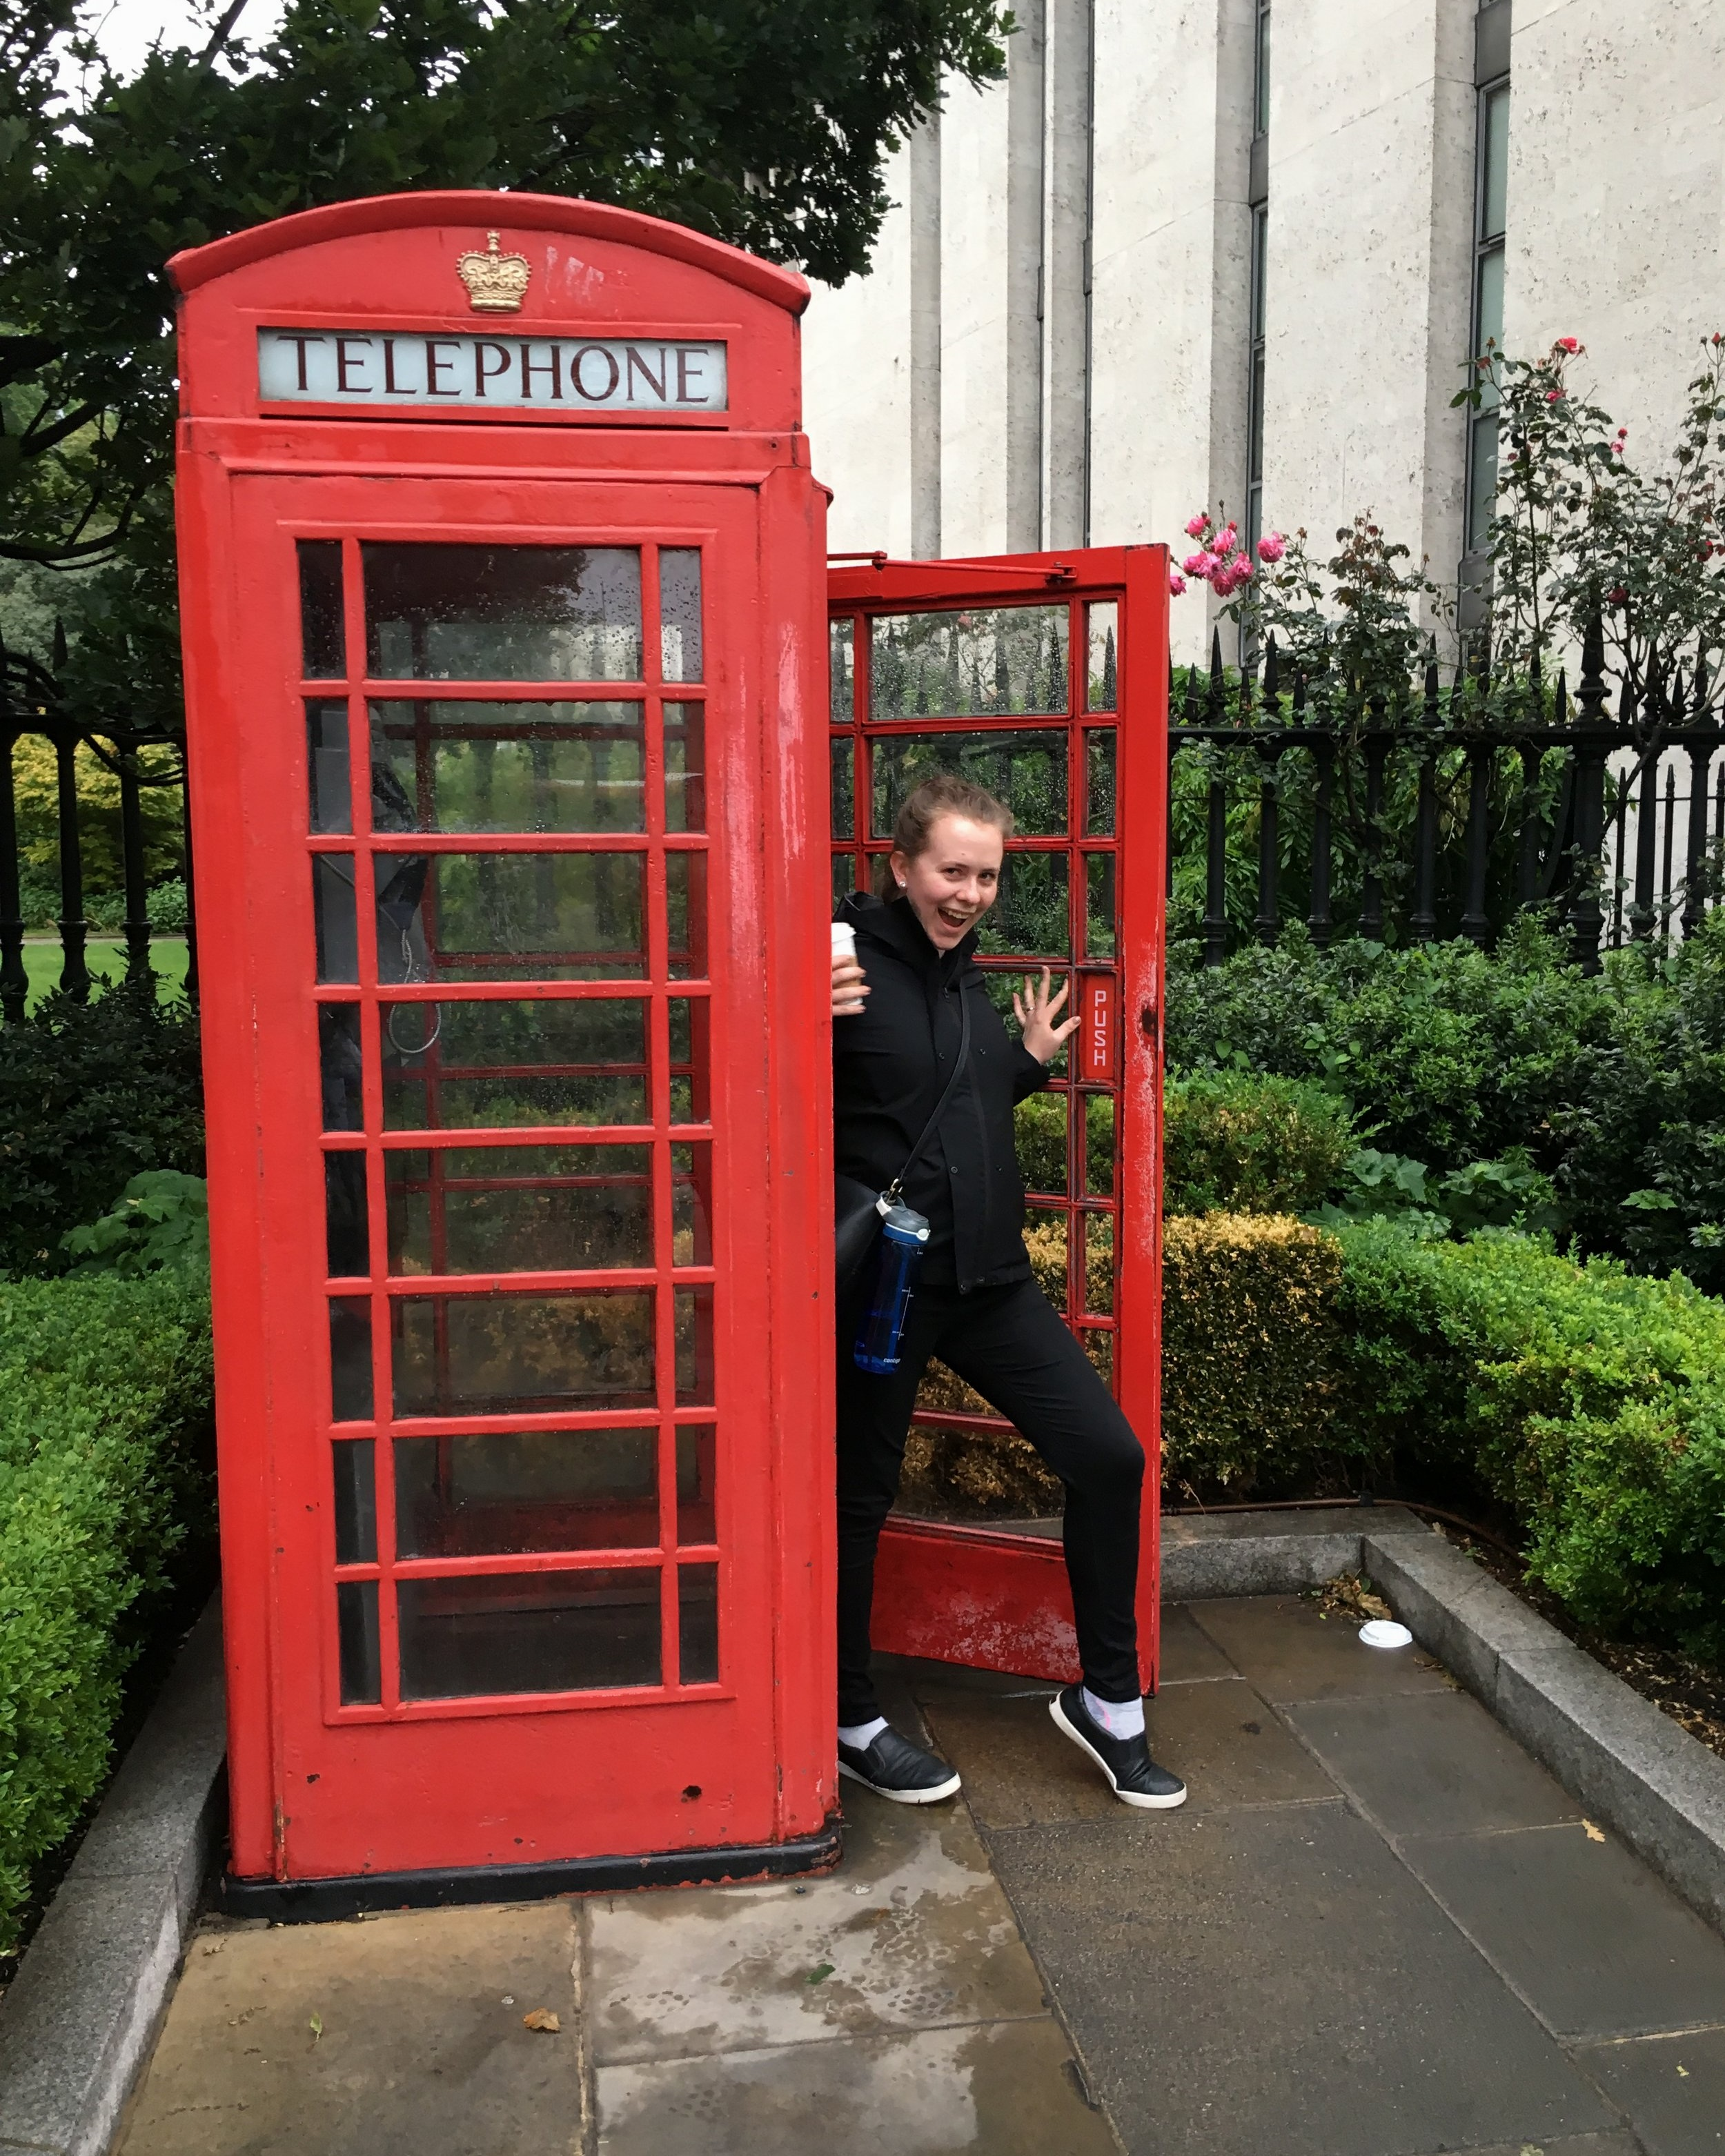 Meet field school blogger Alison, having some fun here posing inside an iconic London phone booth.